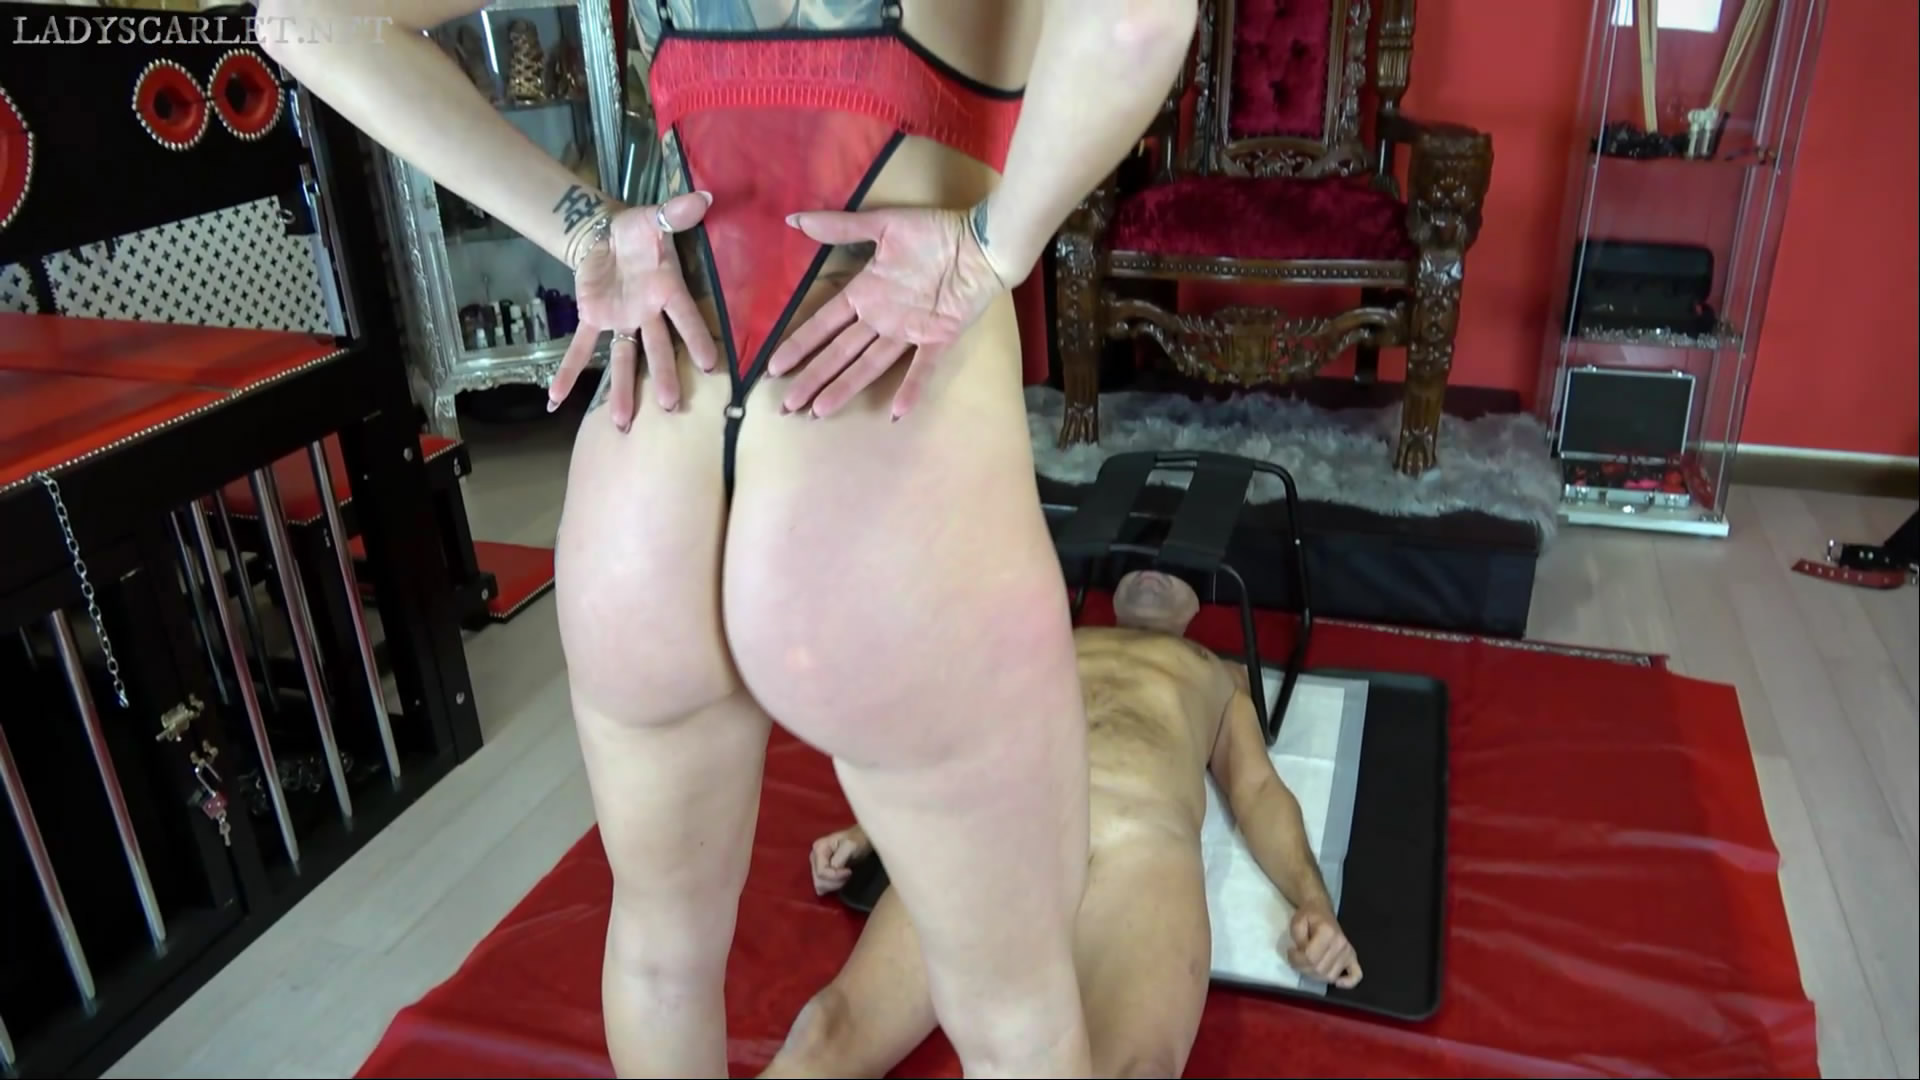 Face chair and pee starring in video Lady Scarlet ($9.99 ScatShop) – Pee